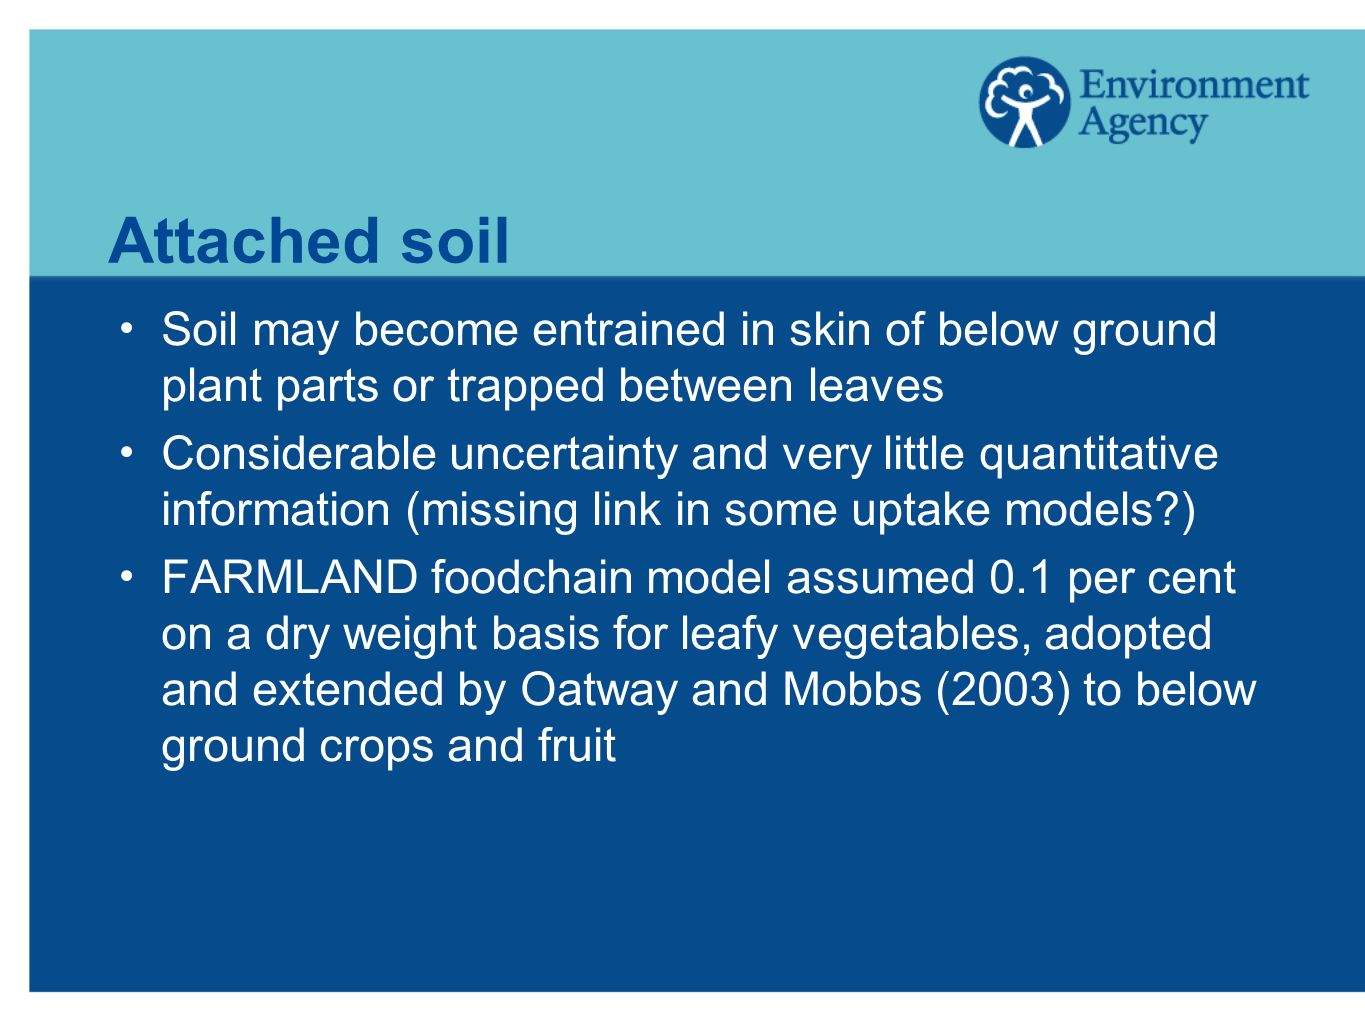 Attached soil Soil may become entrained in skin of below ground plant parts or trapped between leaves Considerable uncertainty and very little quantitative information (missing link in some uptake models?) FARMLAND foodchain model assumed 0.1 per cent on a dry weight basis for leafy vegetables, adopted and extended by Oatway and Mobbs (2003) to below ground crops and fruit